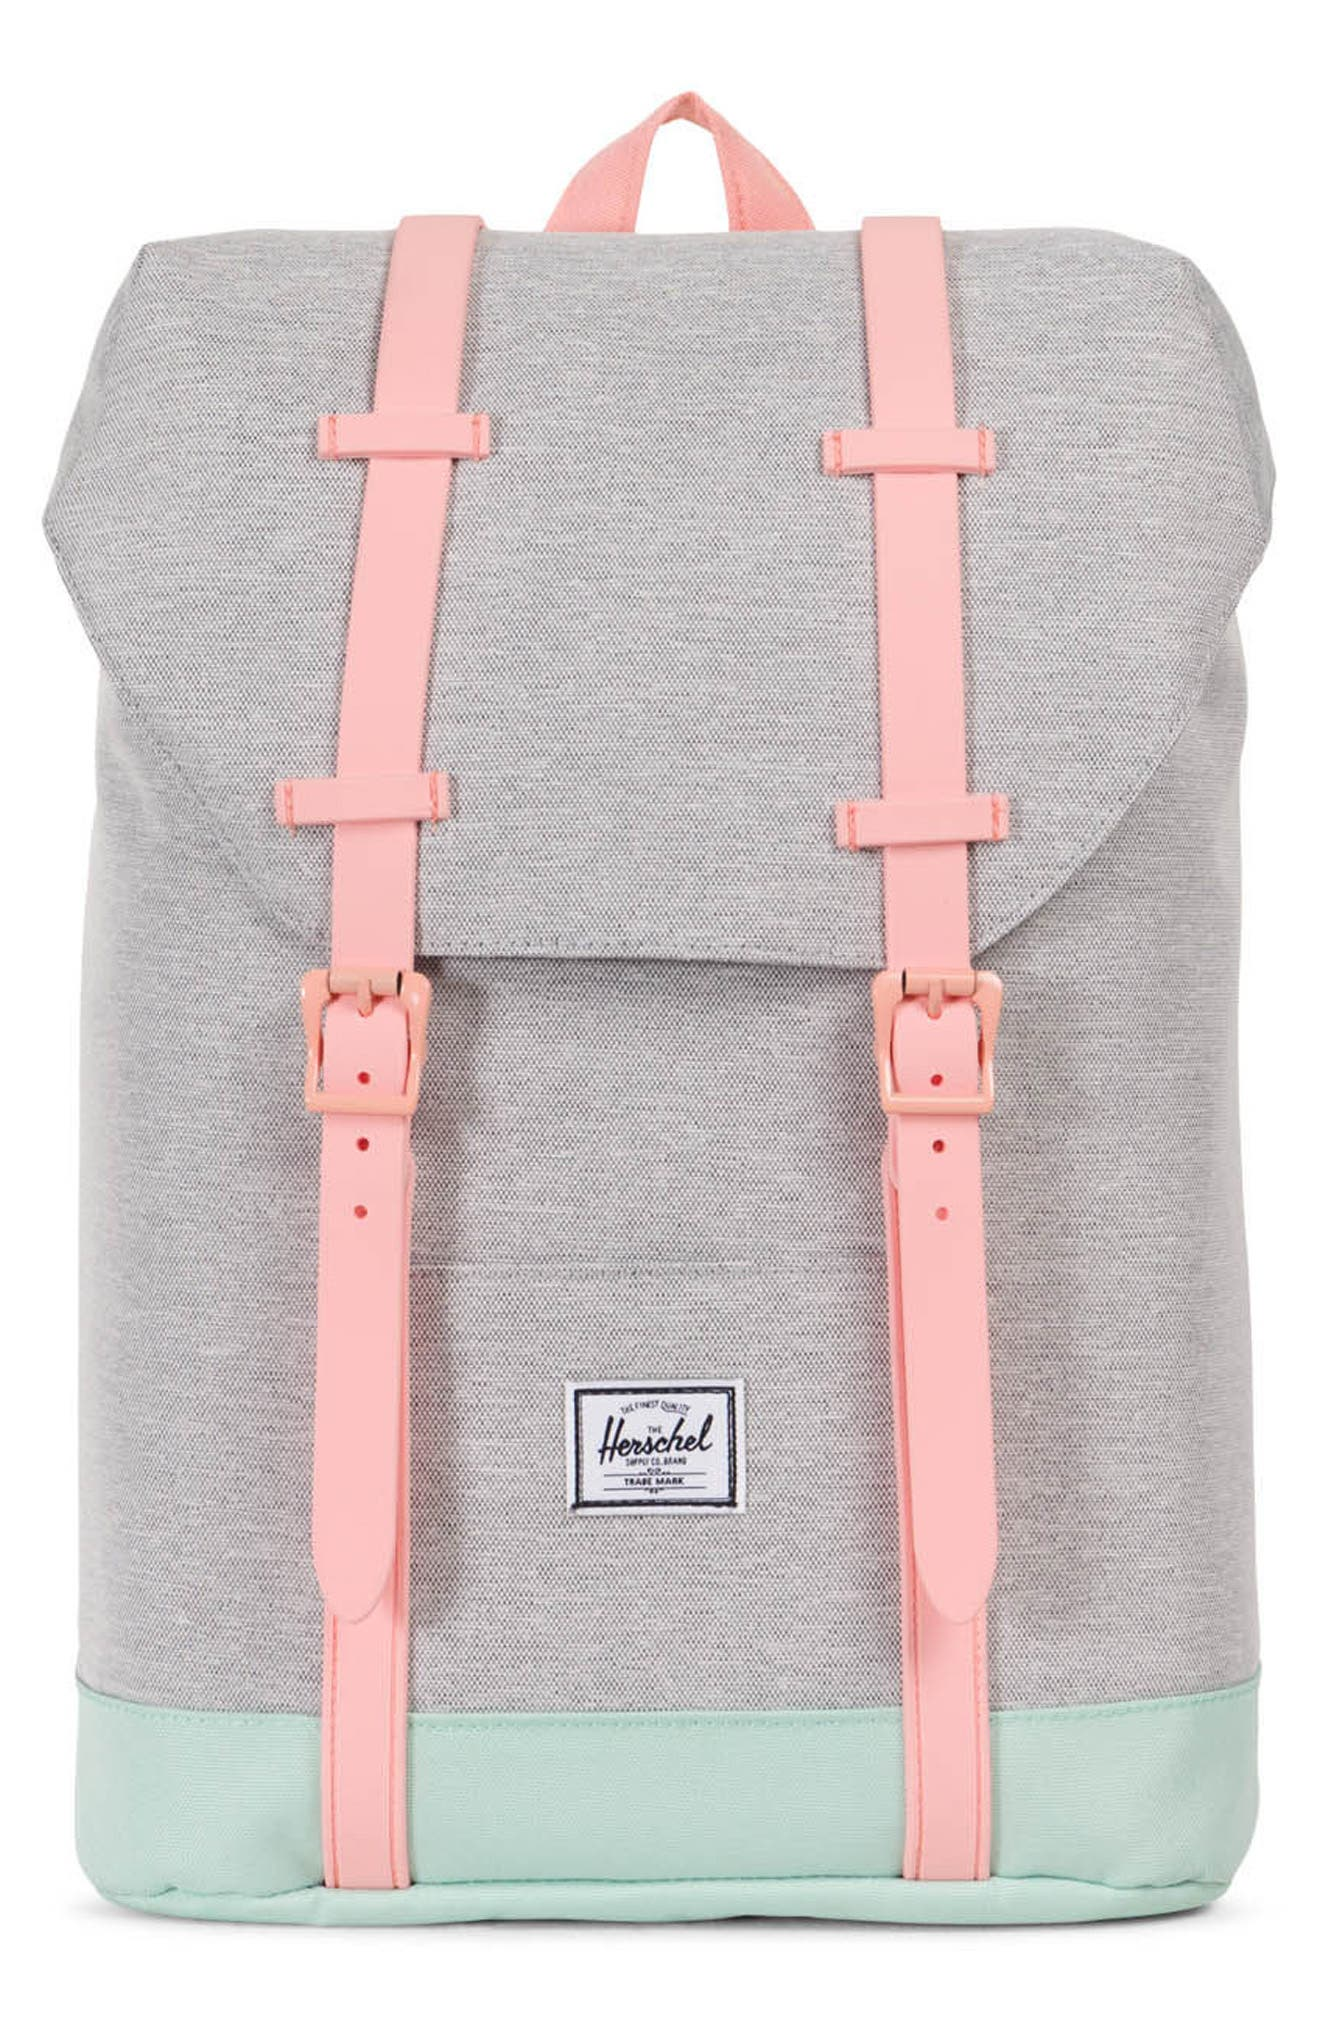 Retreat Backpack,                         Main,                         color, Light Grey/ Yucca/ Peach